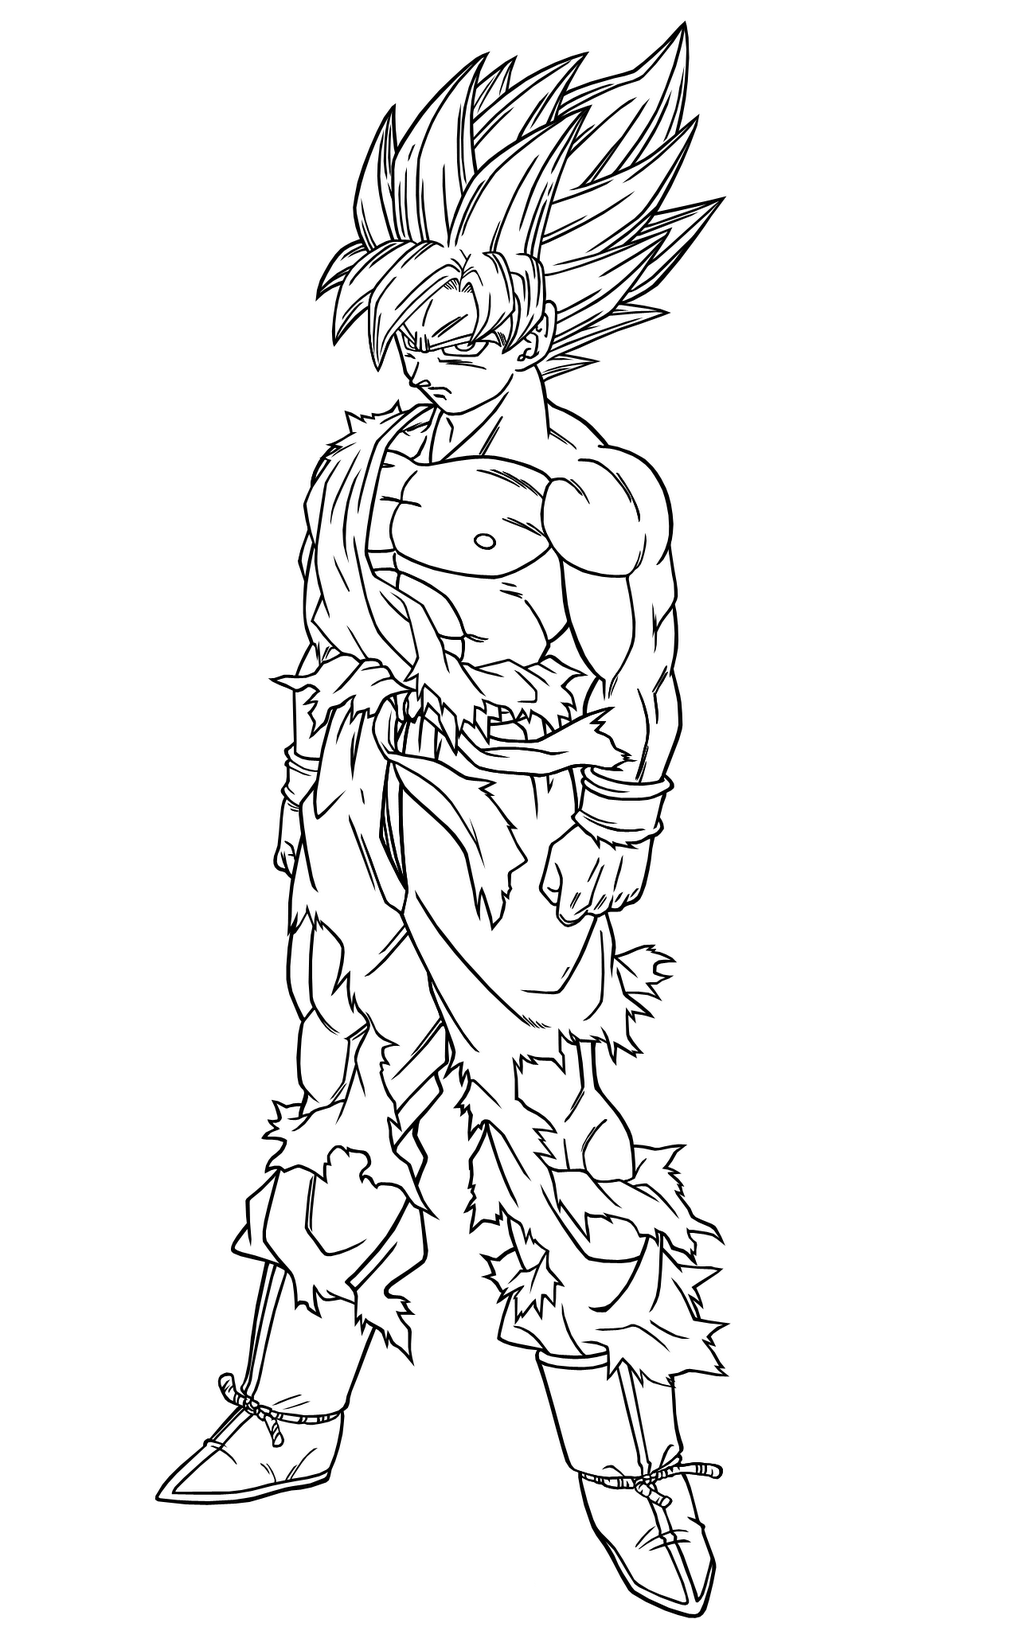 Facile dragon ball goku super sayian contre freezer coloriage dragon ball z coloriages pour - Dessin de dragon ball super ...